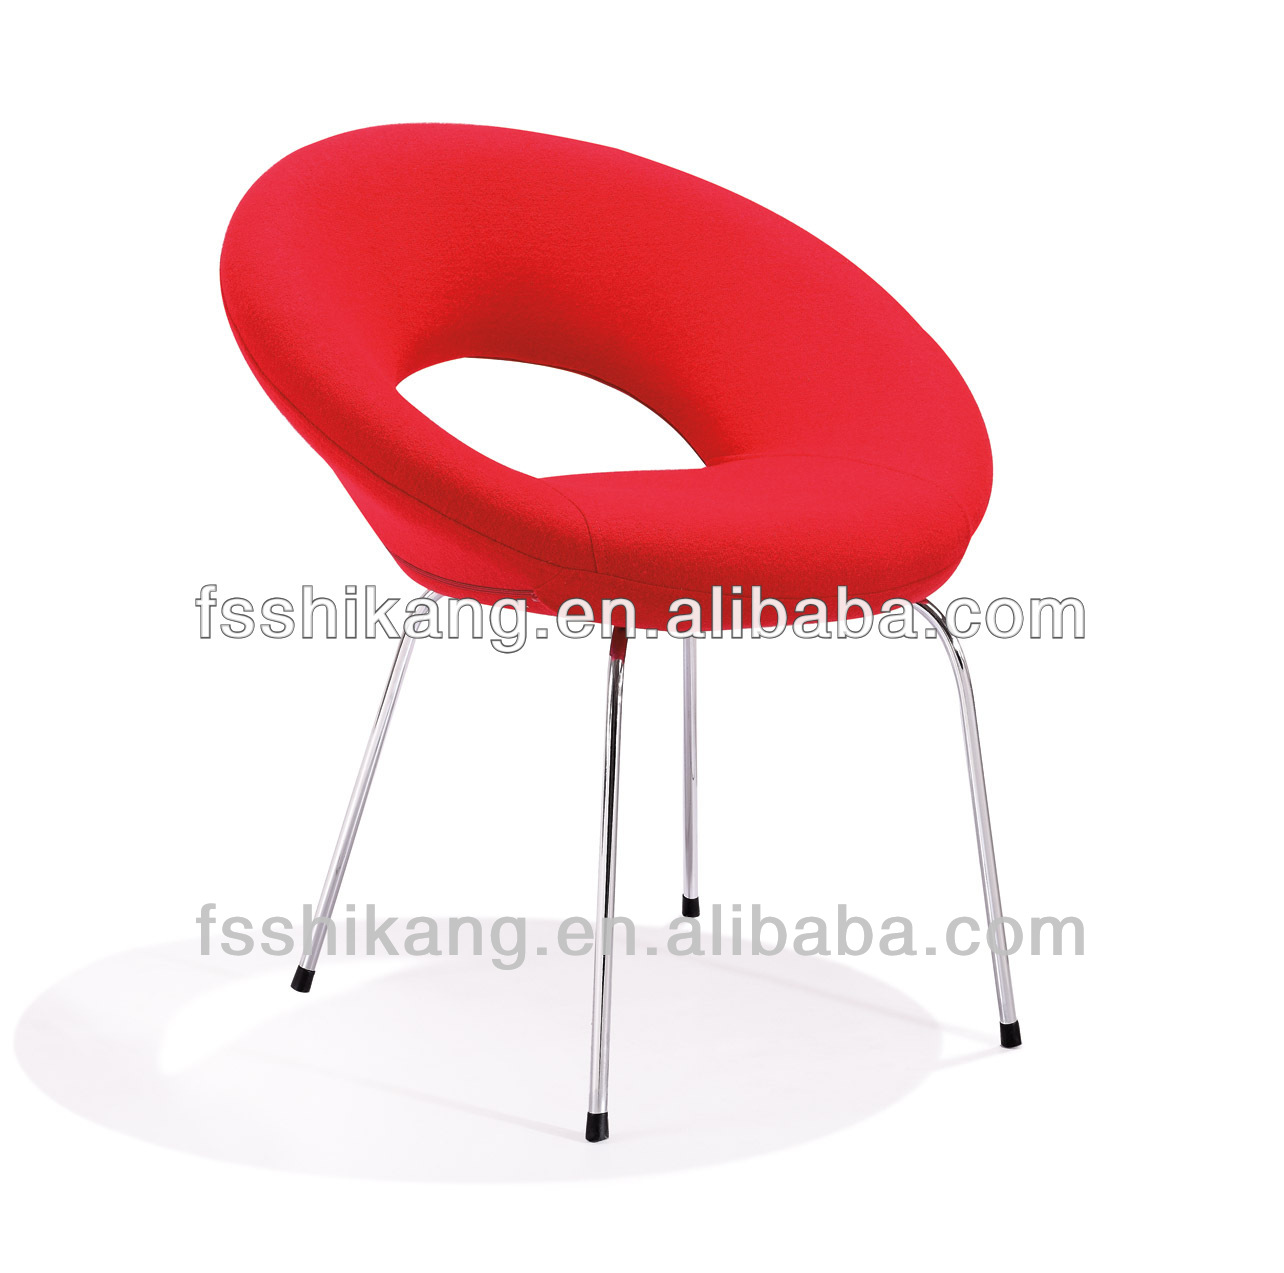 Sk-h-417 Favorites Compare Plastic Chair/wholesale Leisure Chair ...